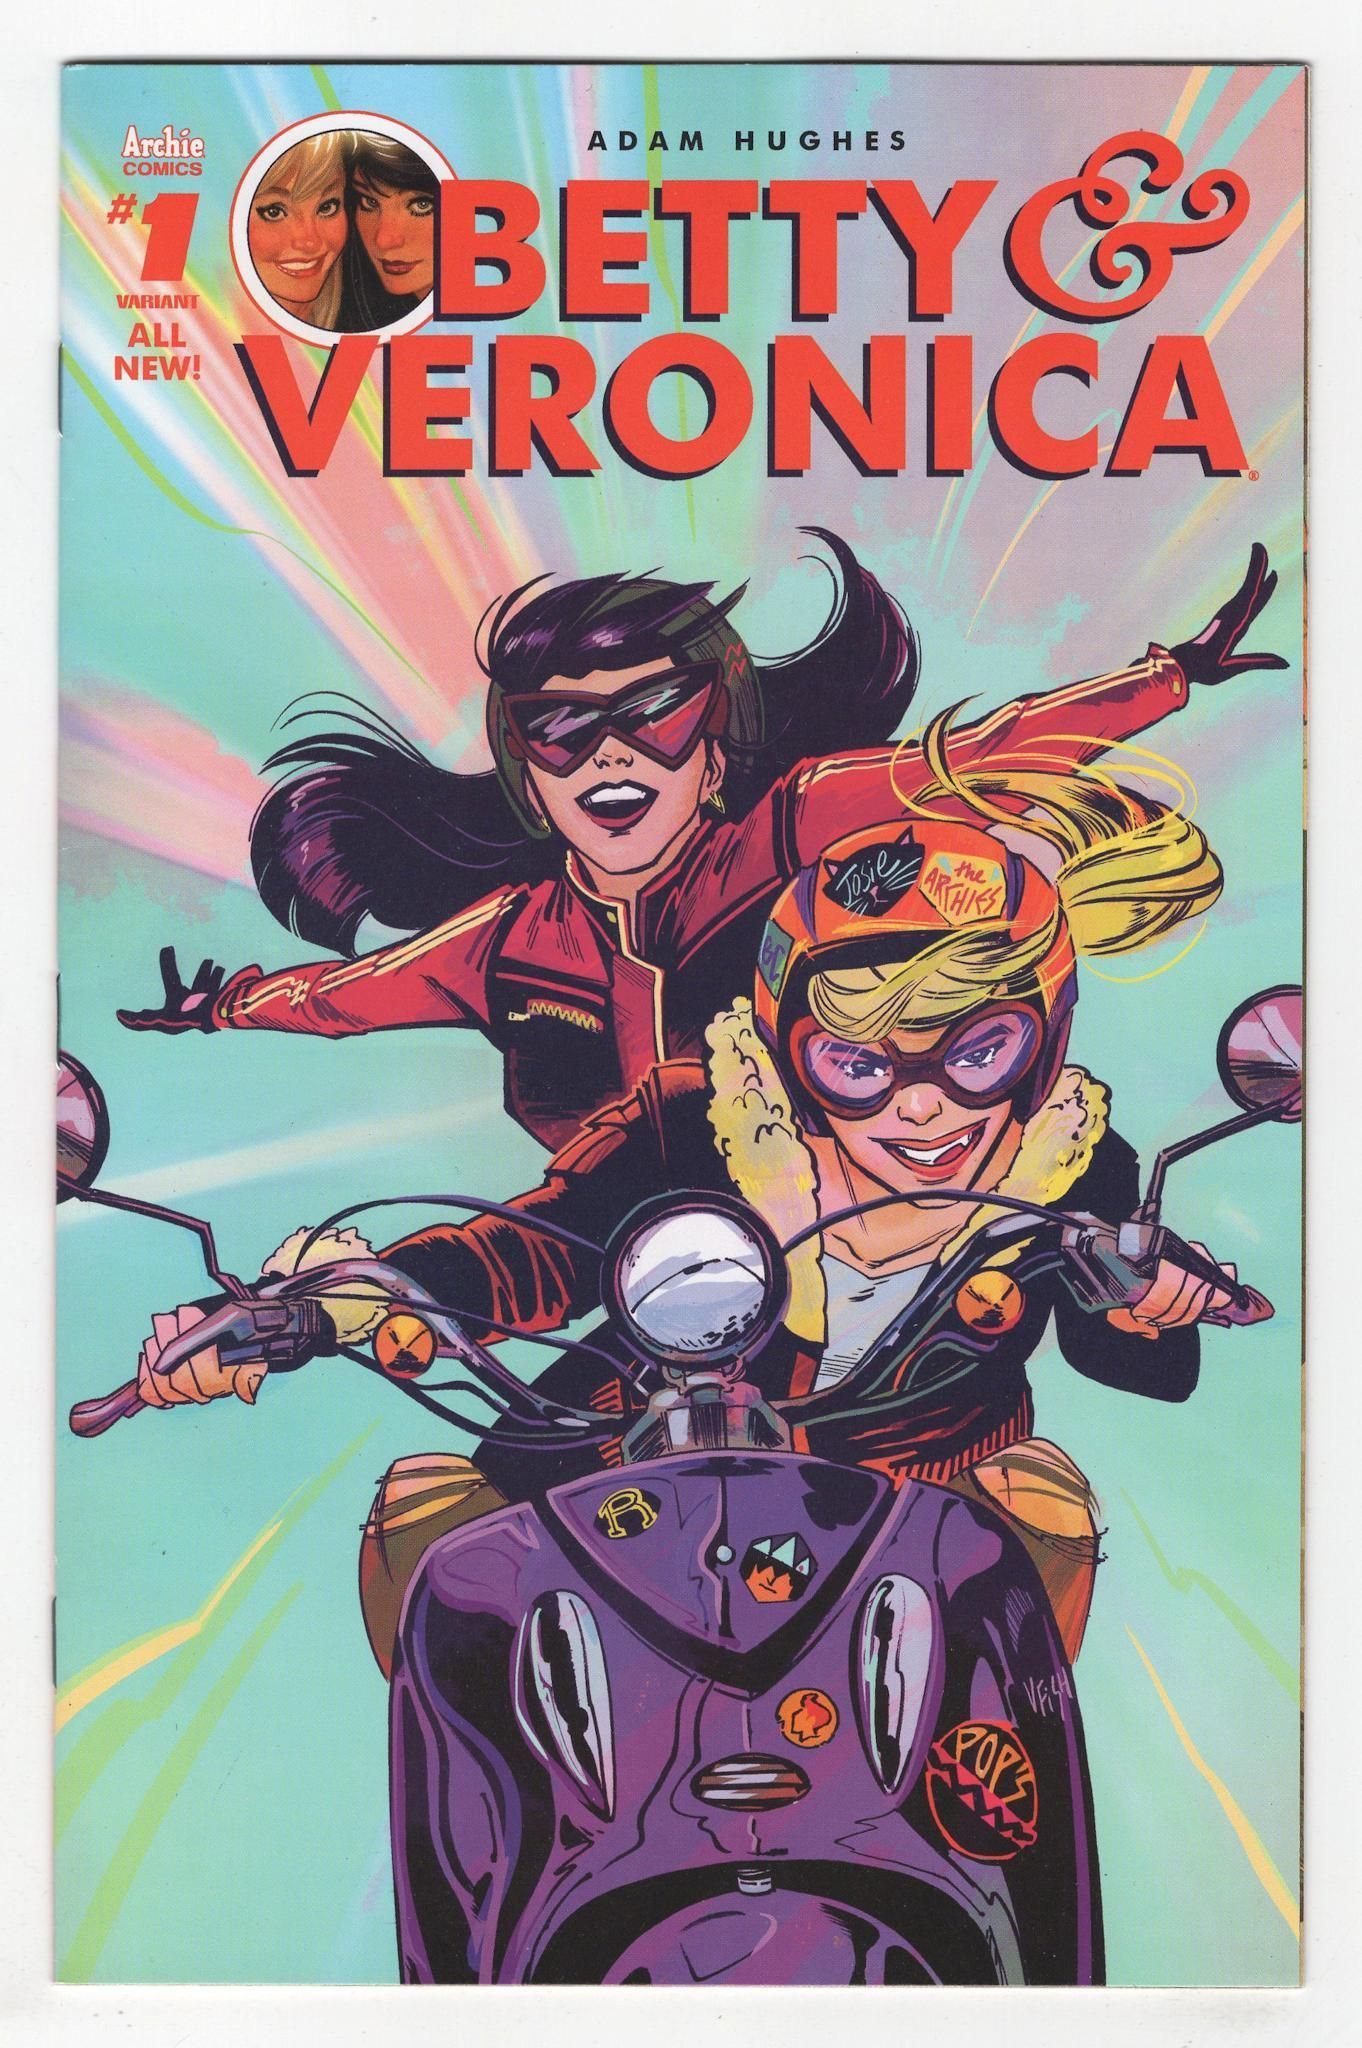 Betty and veronica 1 veronica fish variant cover 2016